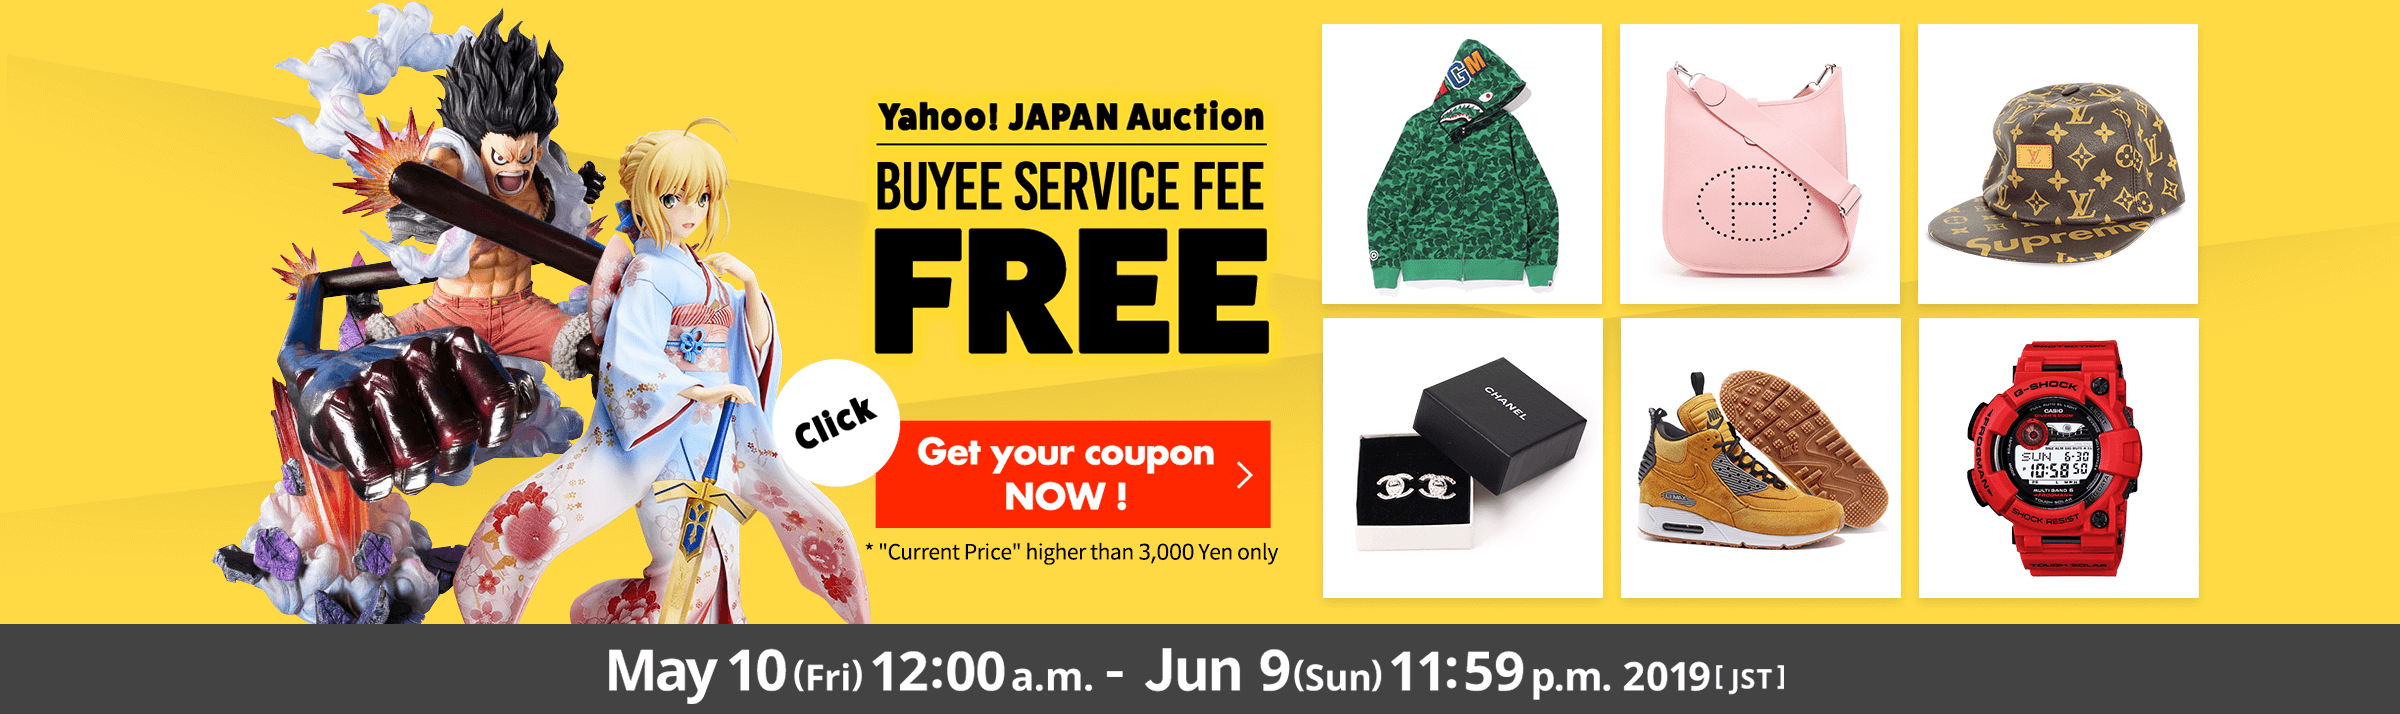 20190510 Yahoo! JAPAN Auction Special! Buyee Service Fee FREE Coupon!